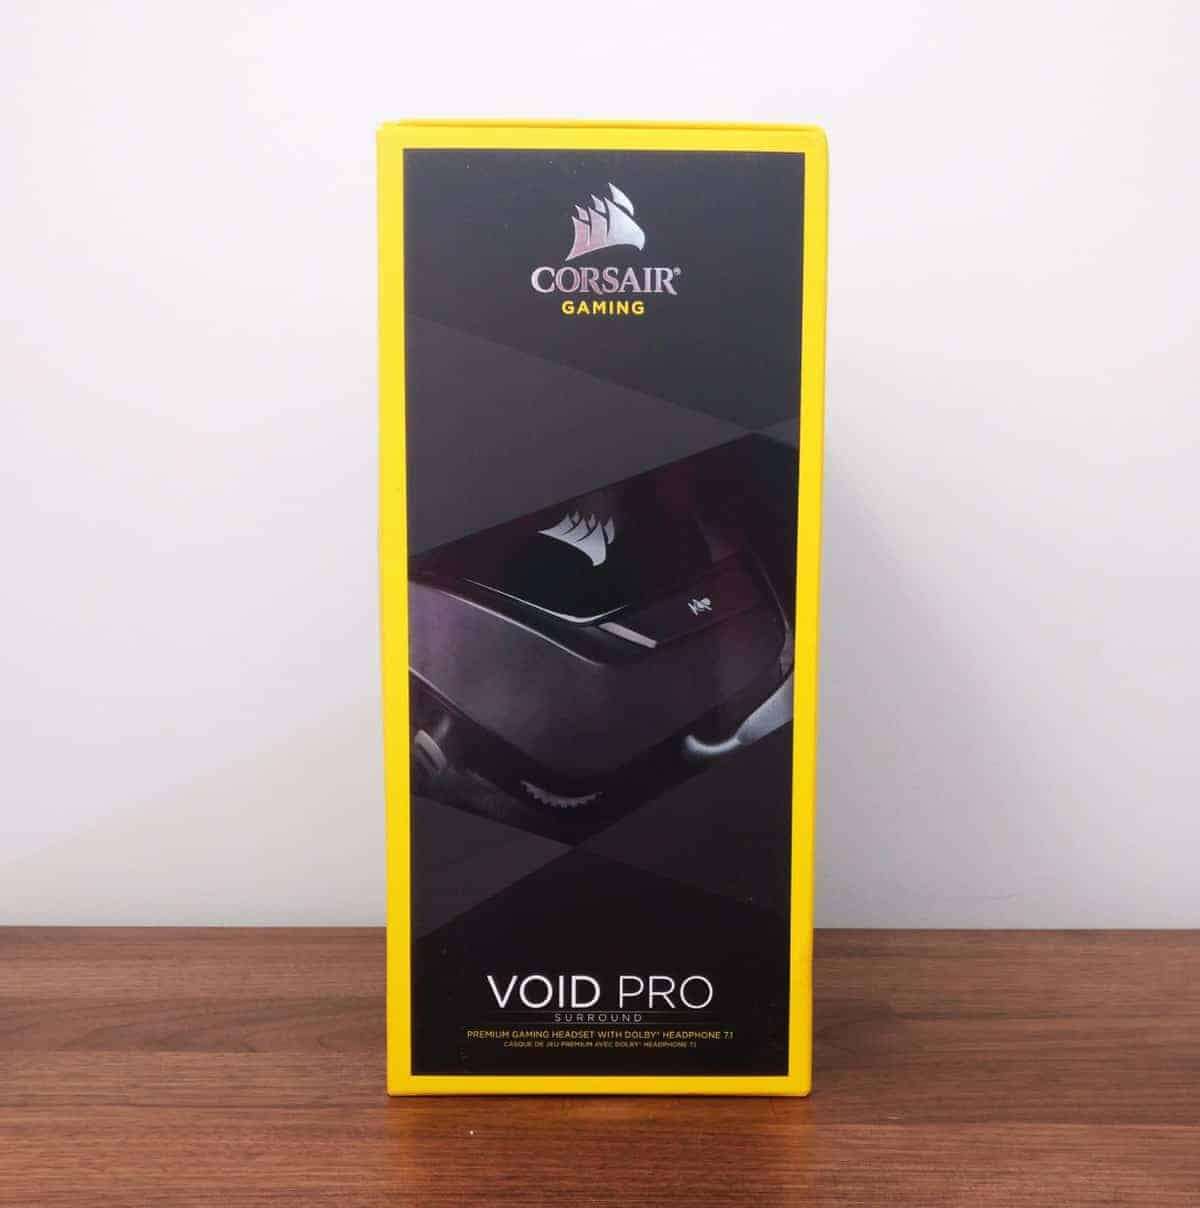 corsair-void-pro-photos-33 Corsair Void Pro Surround Gaming Headset Review